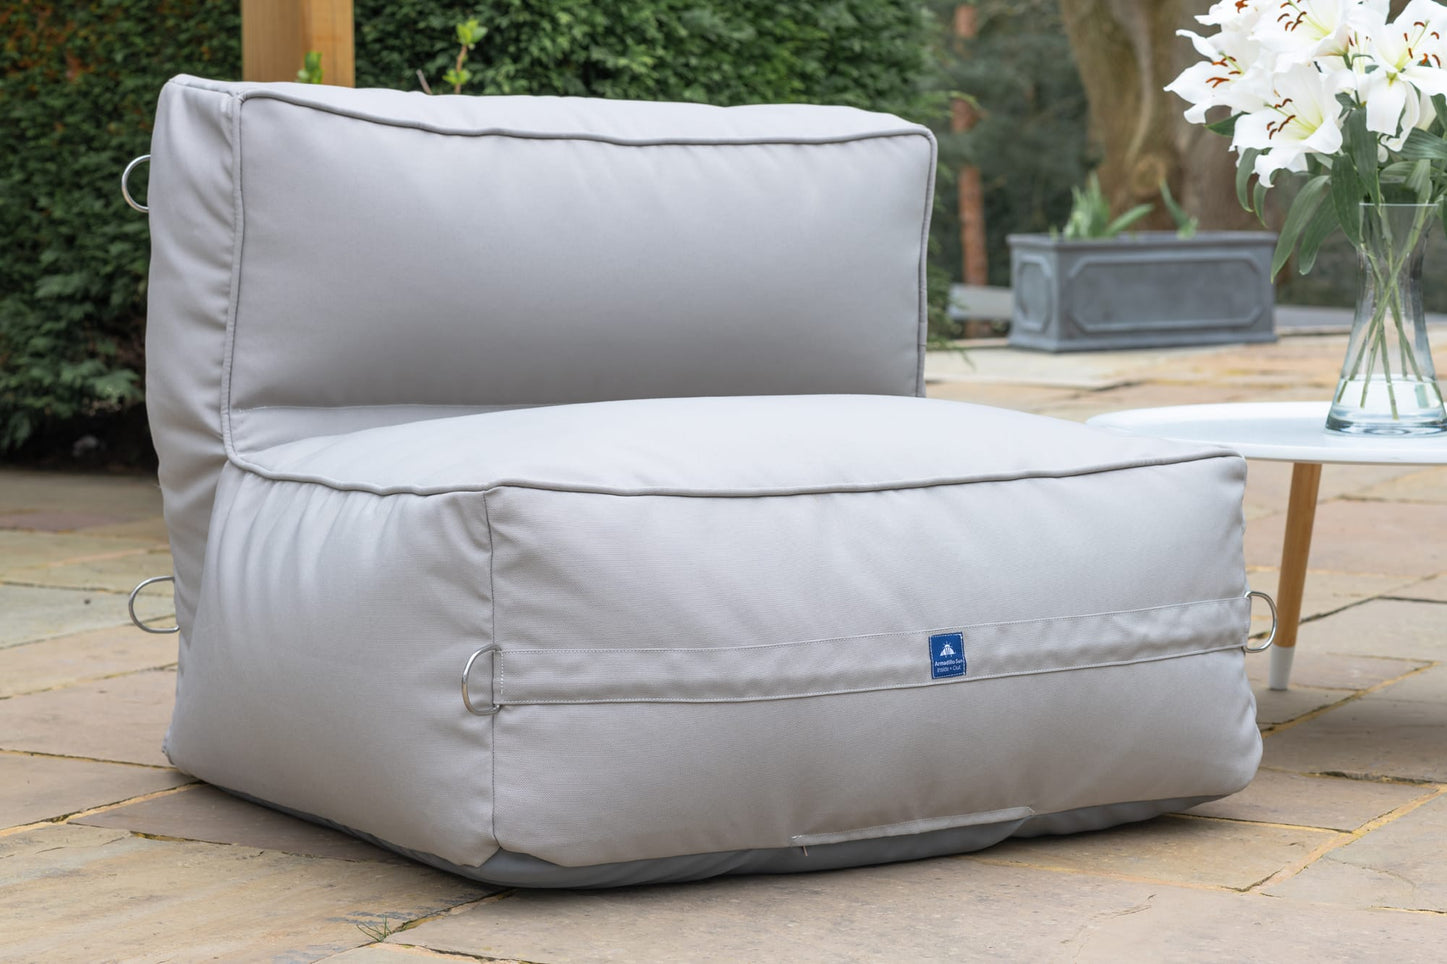 Monaco Modular Bean Bag Chair in Pumice Grey Monaco armadillosun